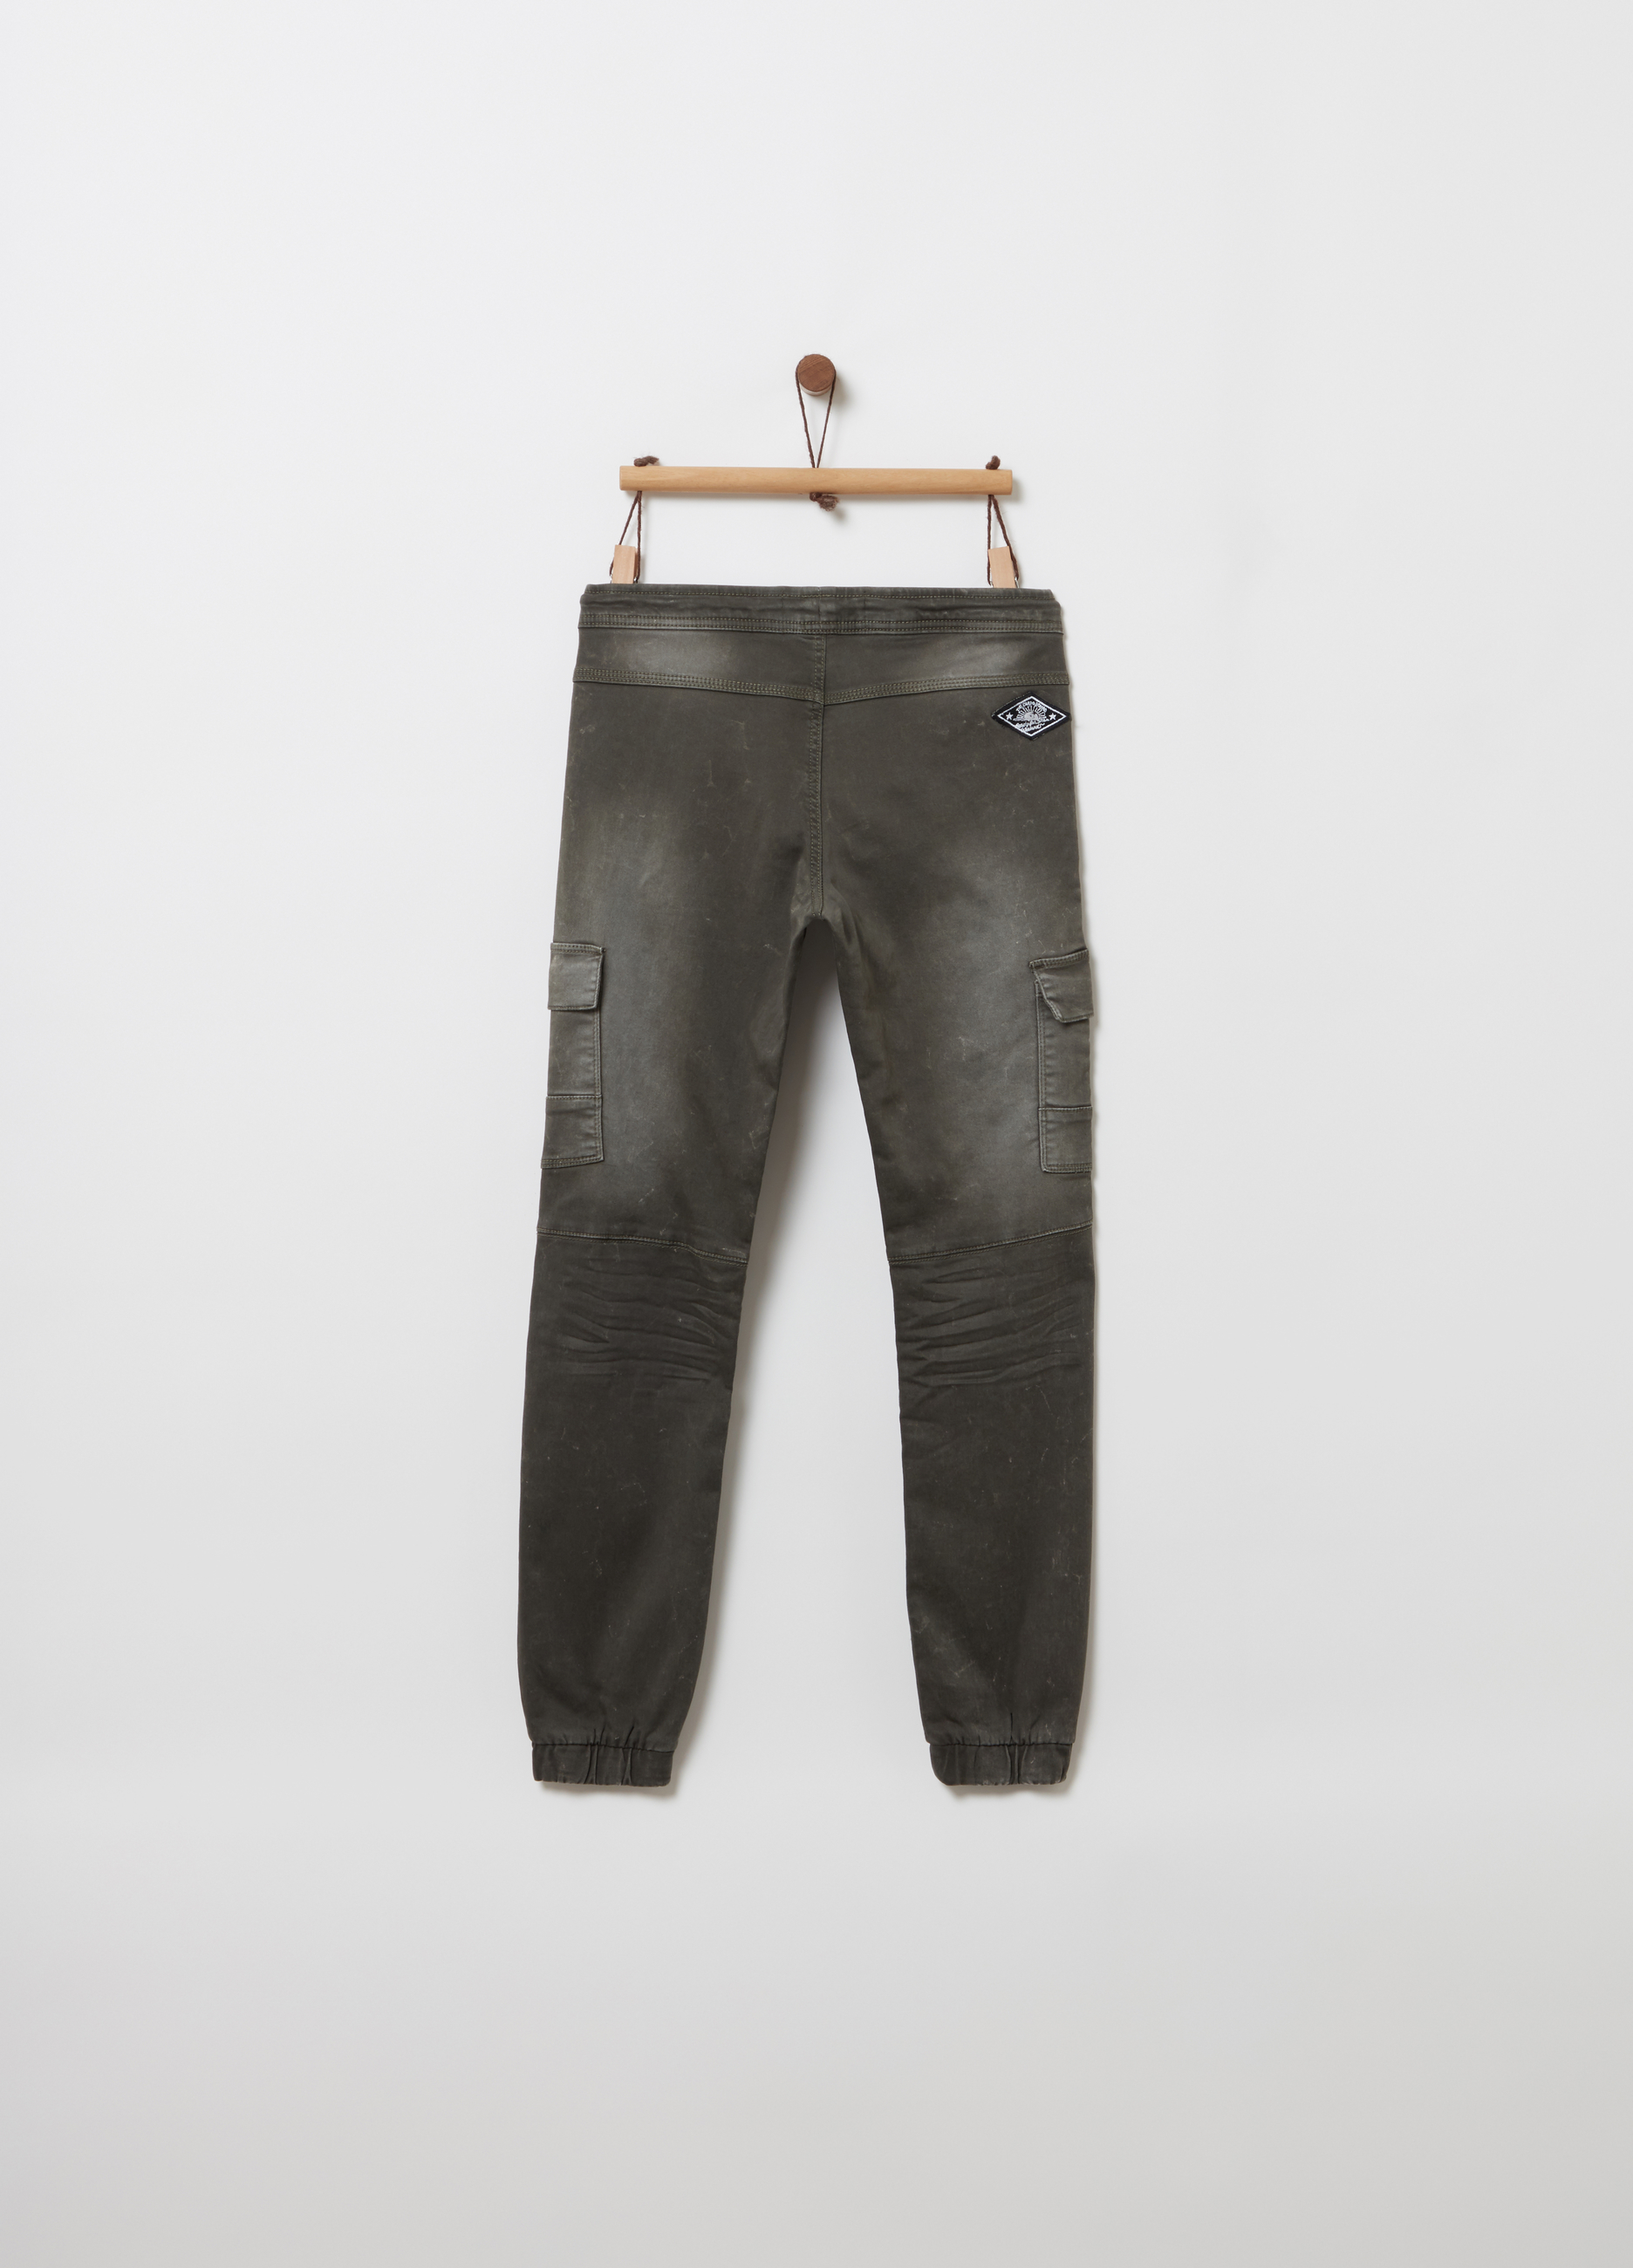 a4eb15e6d465 Comfort-fit cargo-cut chino trousers